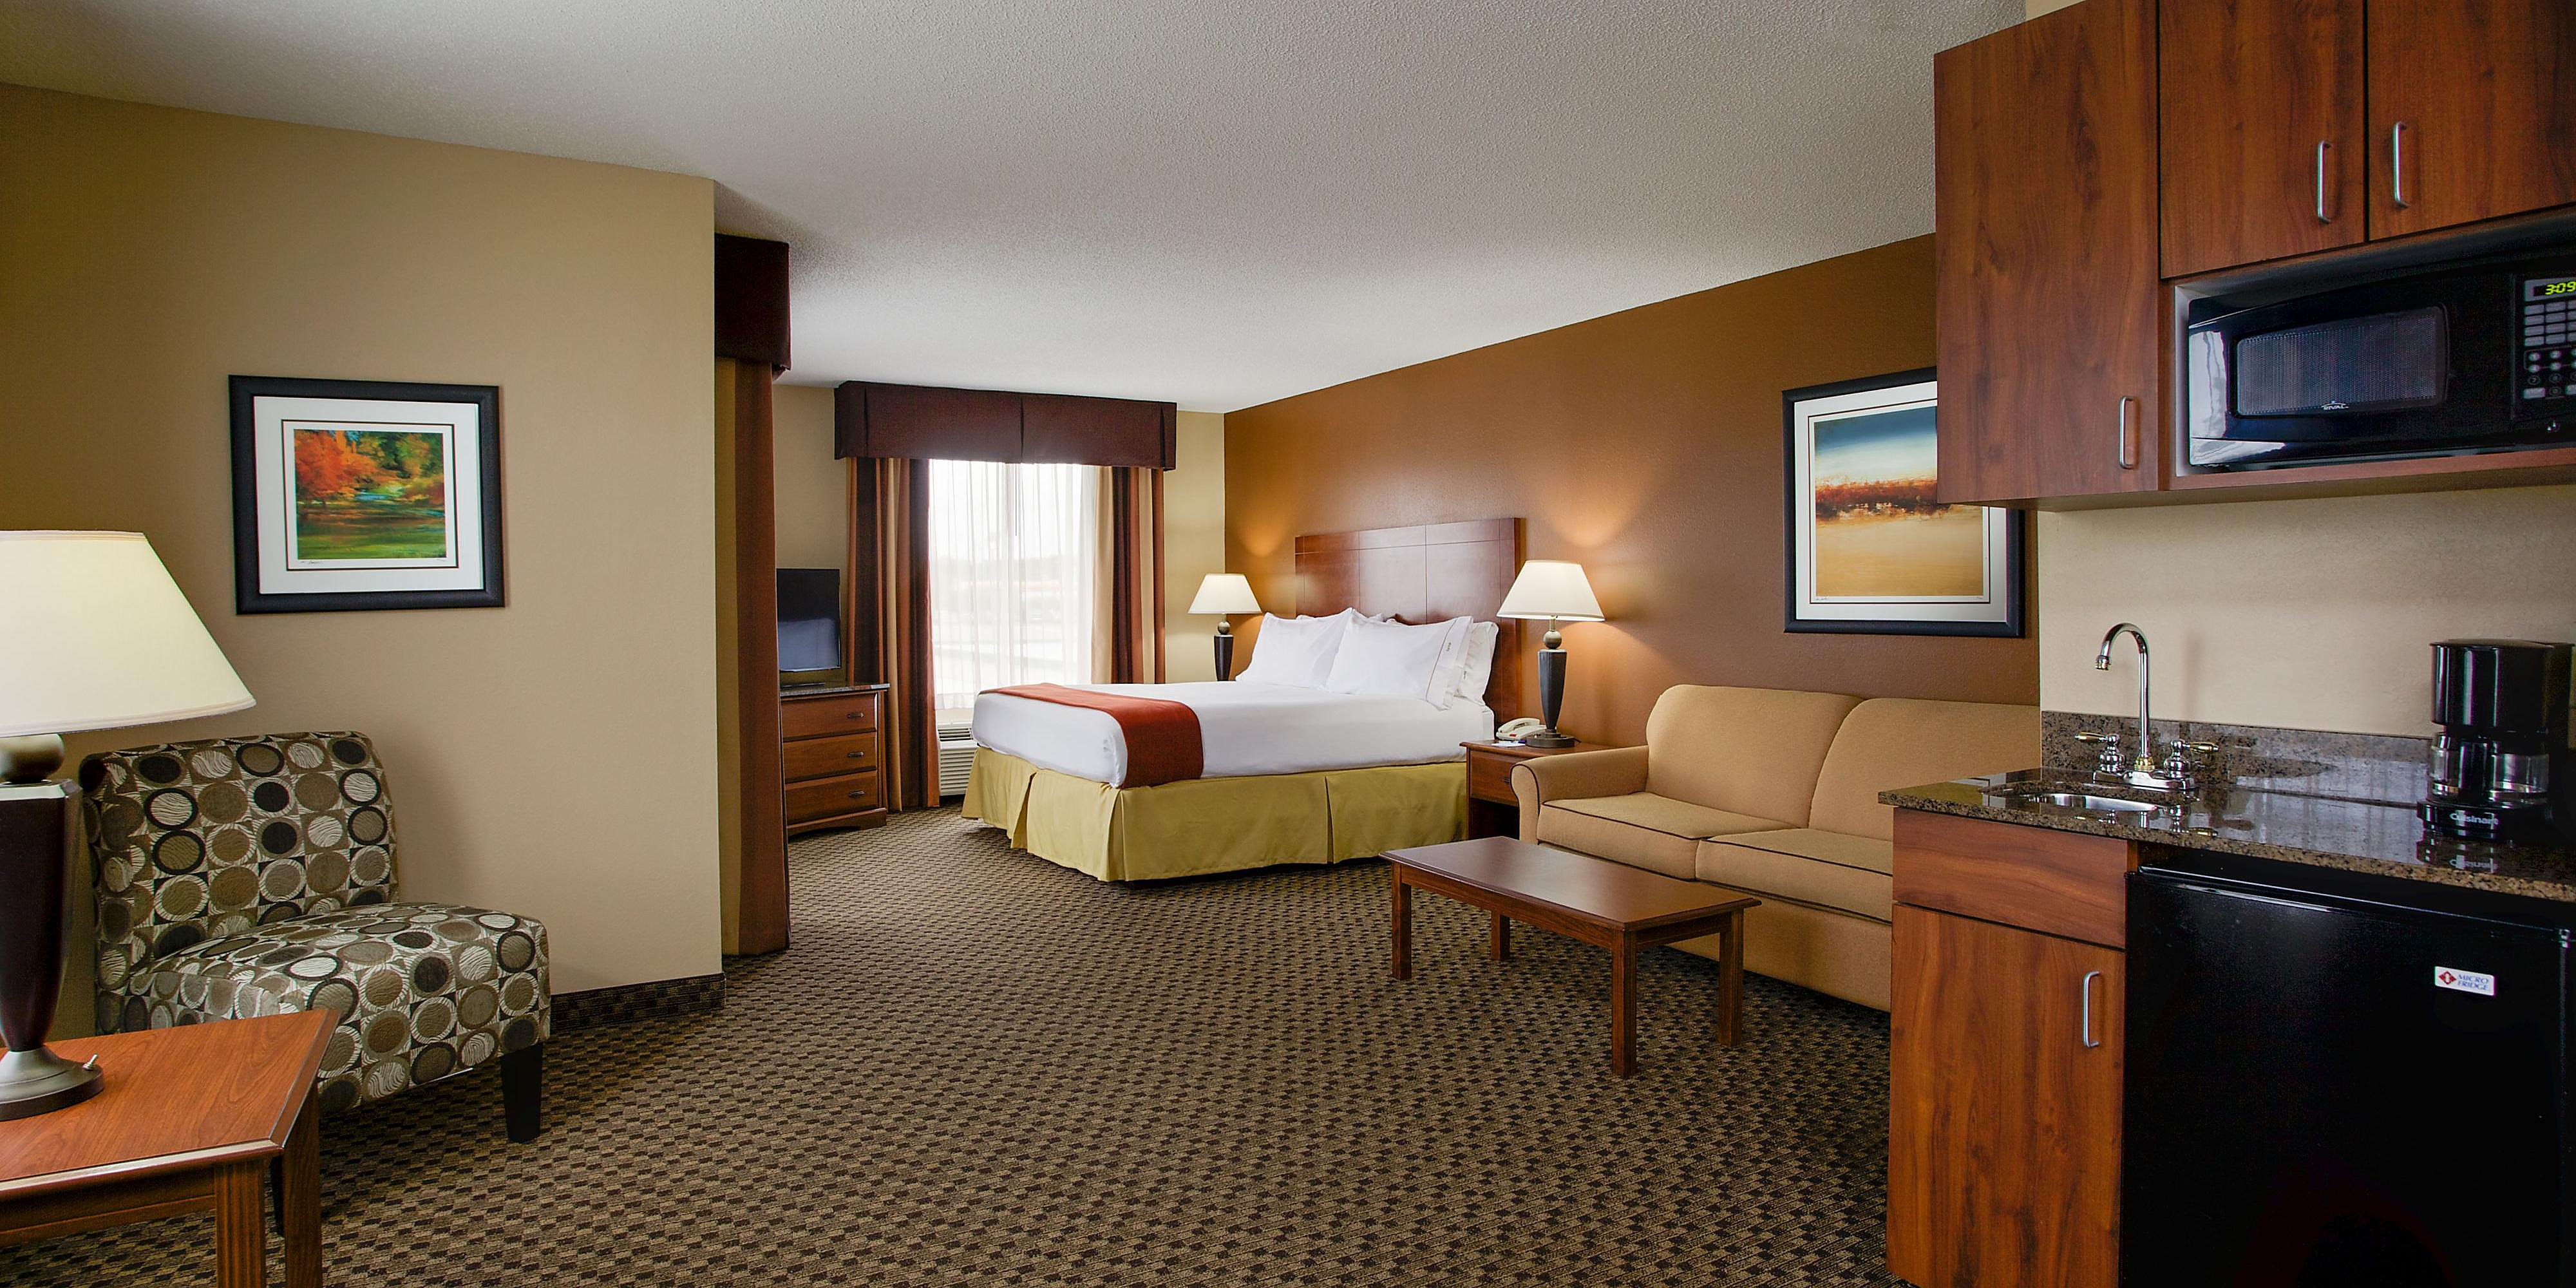 Holiday Inn Express & Suites Columbia-I-20 @ Clemson Rd Hotel by IHG